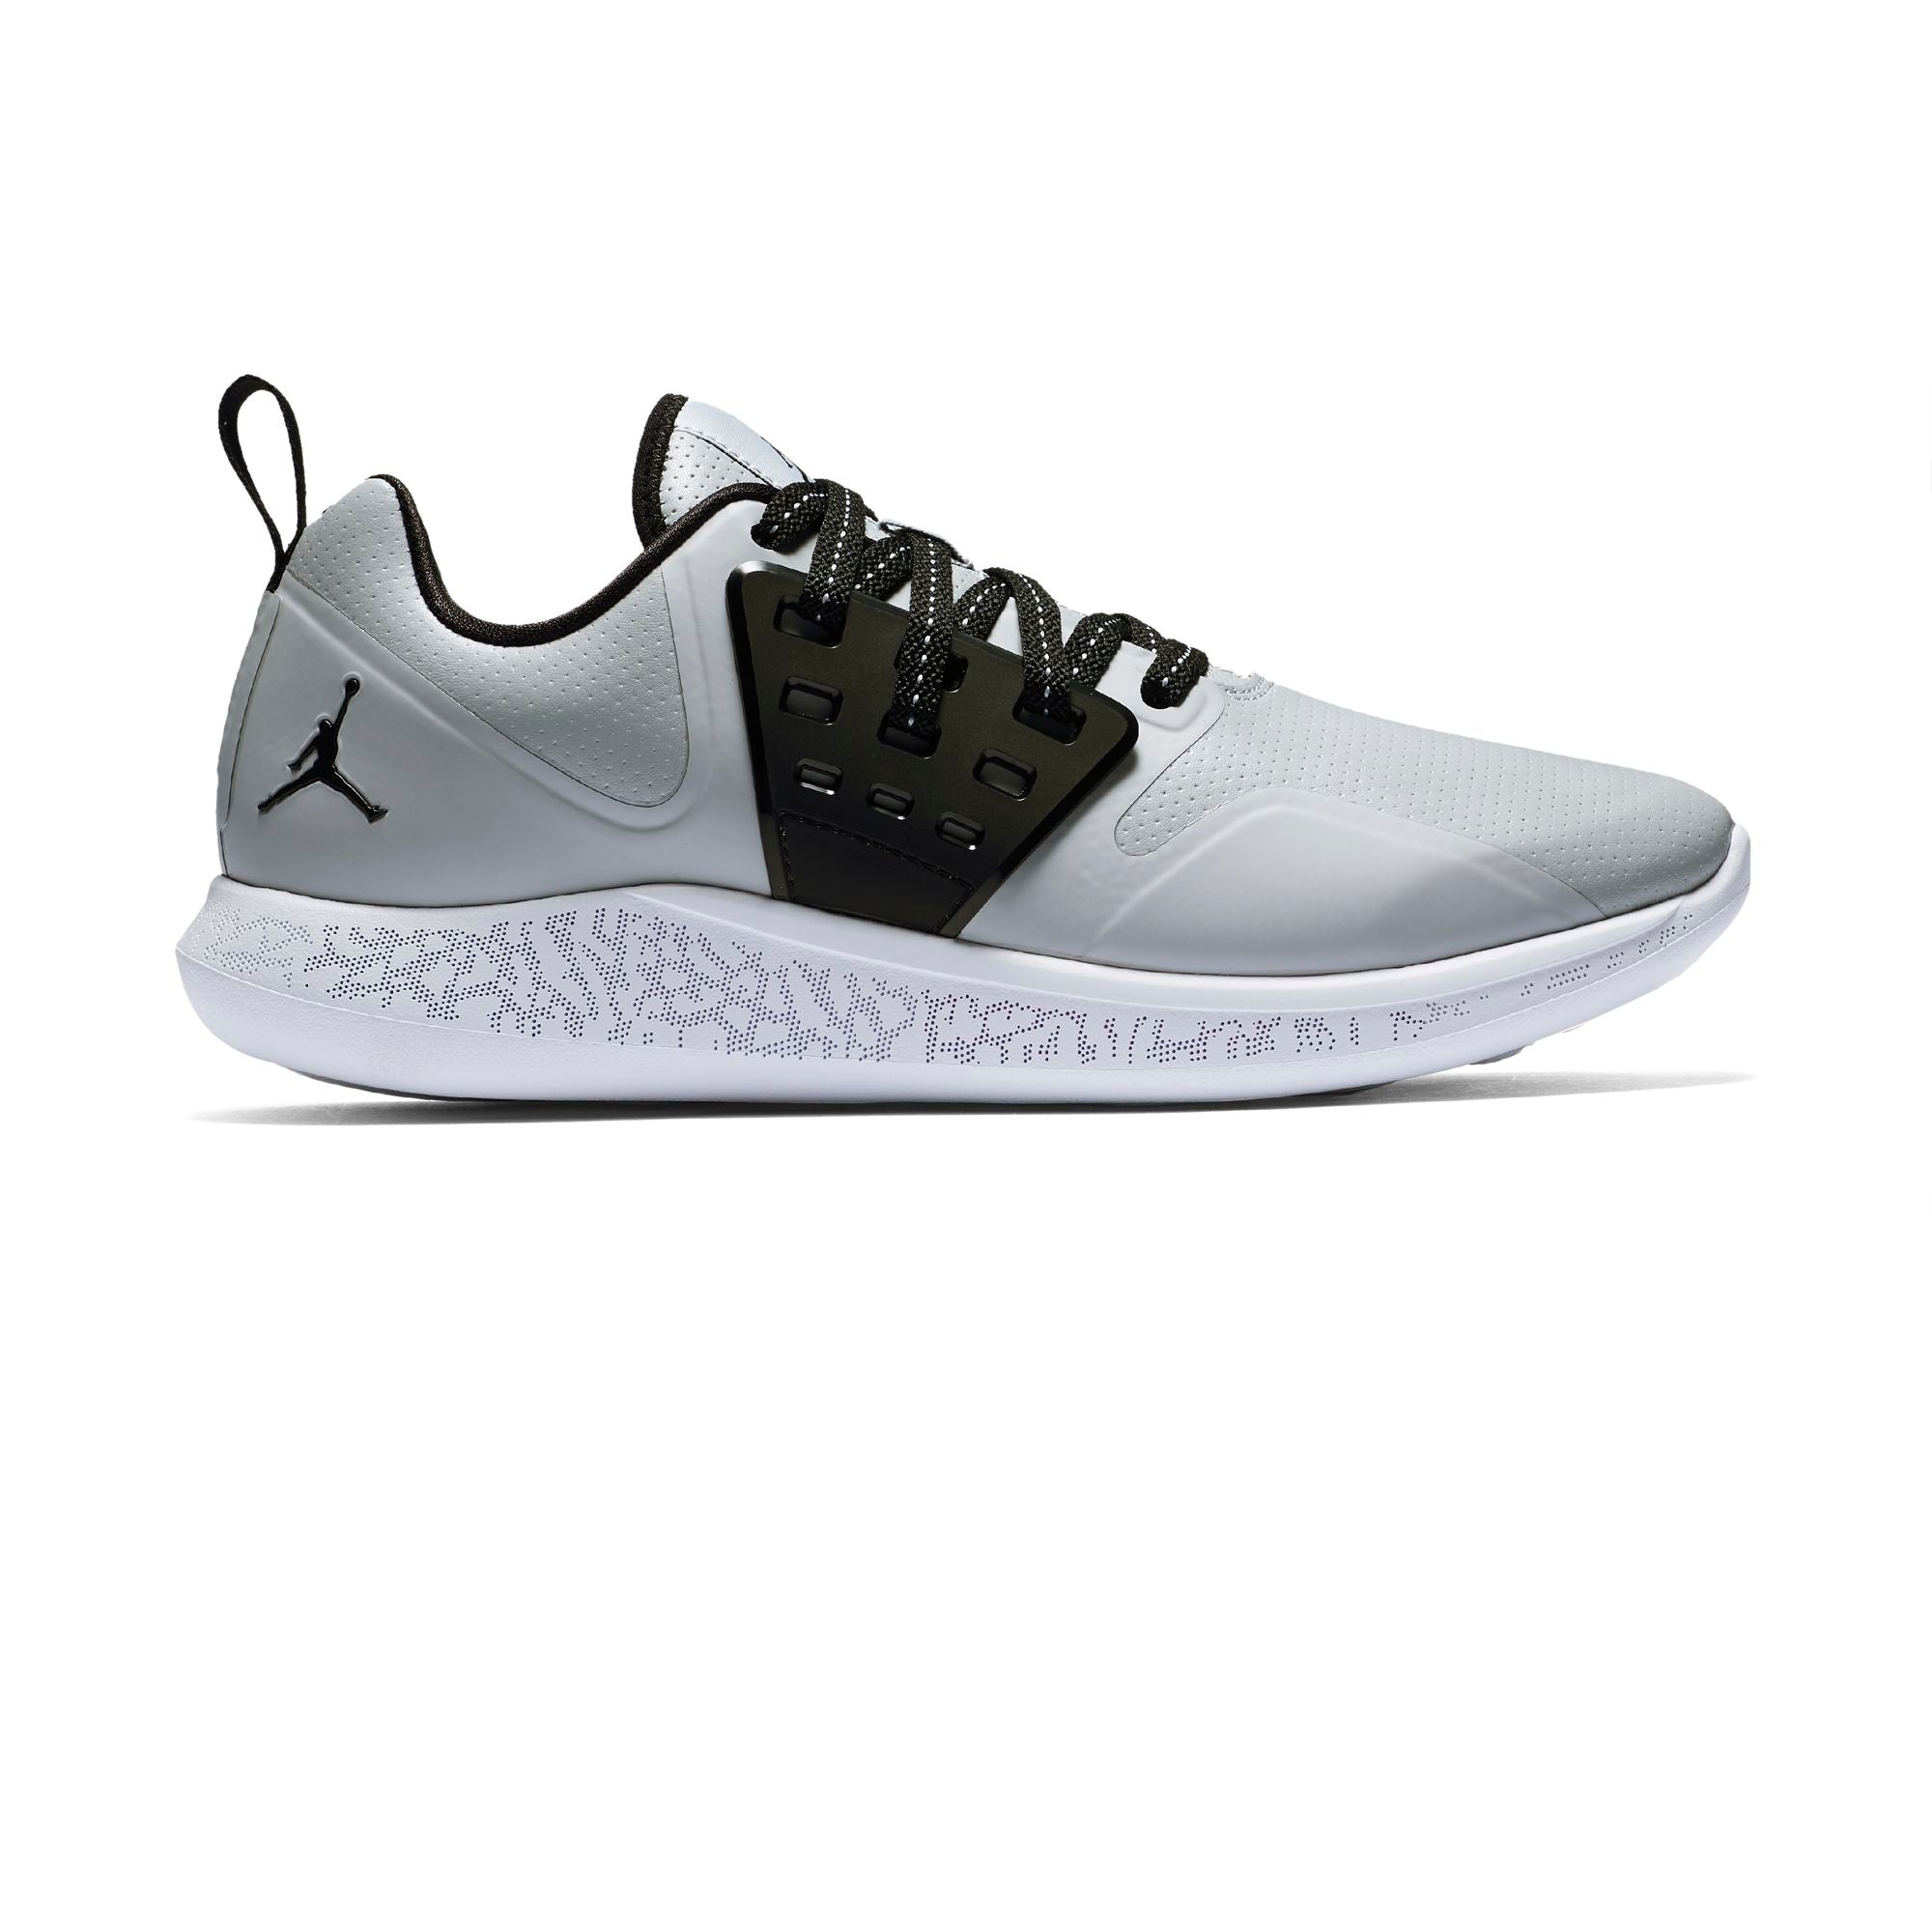 Nike Jordan Grind Running Shoe - Wolf Grey/Black/White